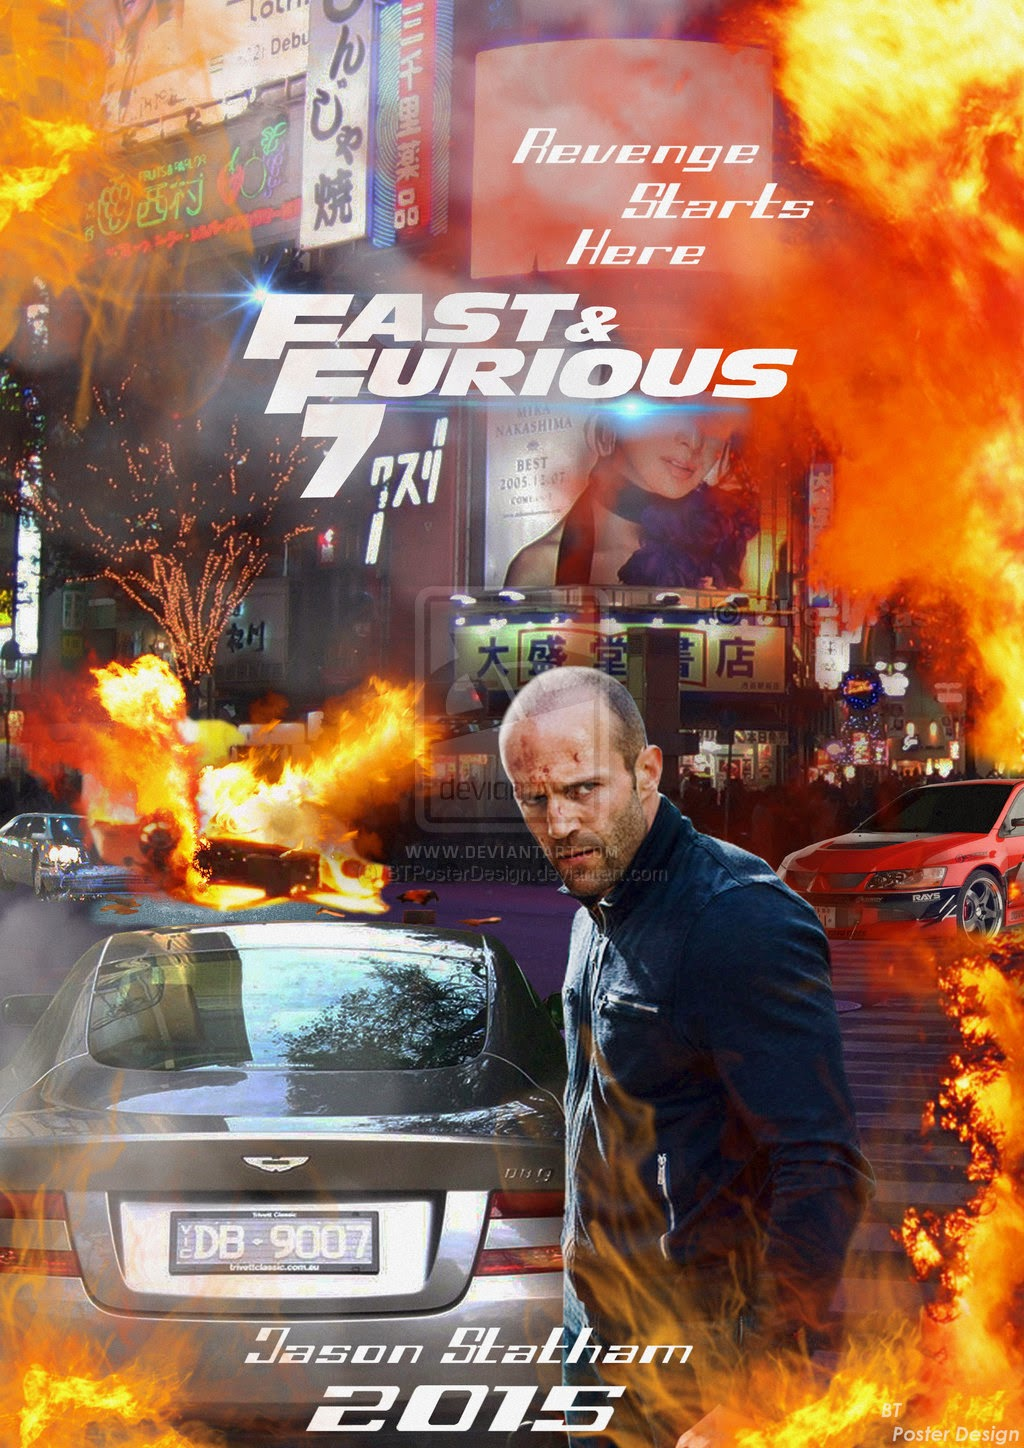 fast and furious 7 online free full movie english